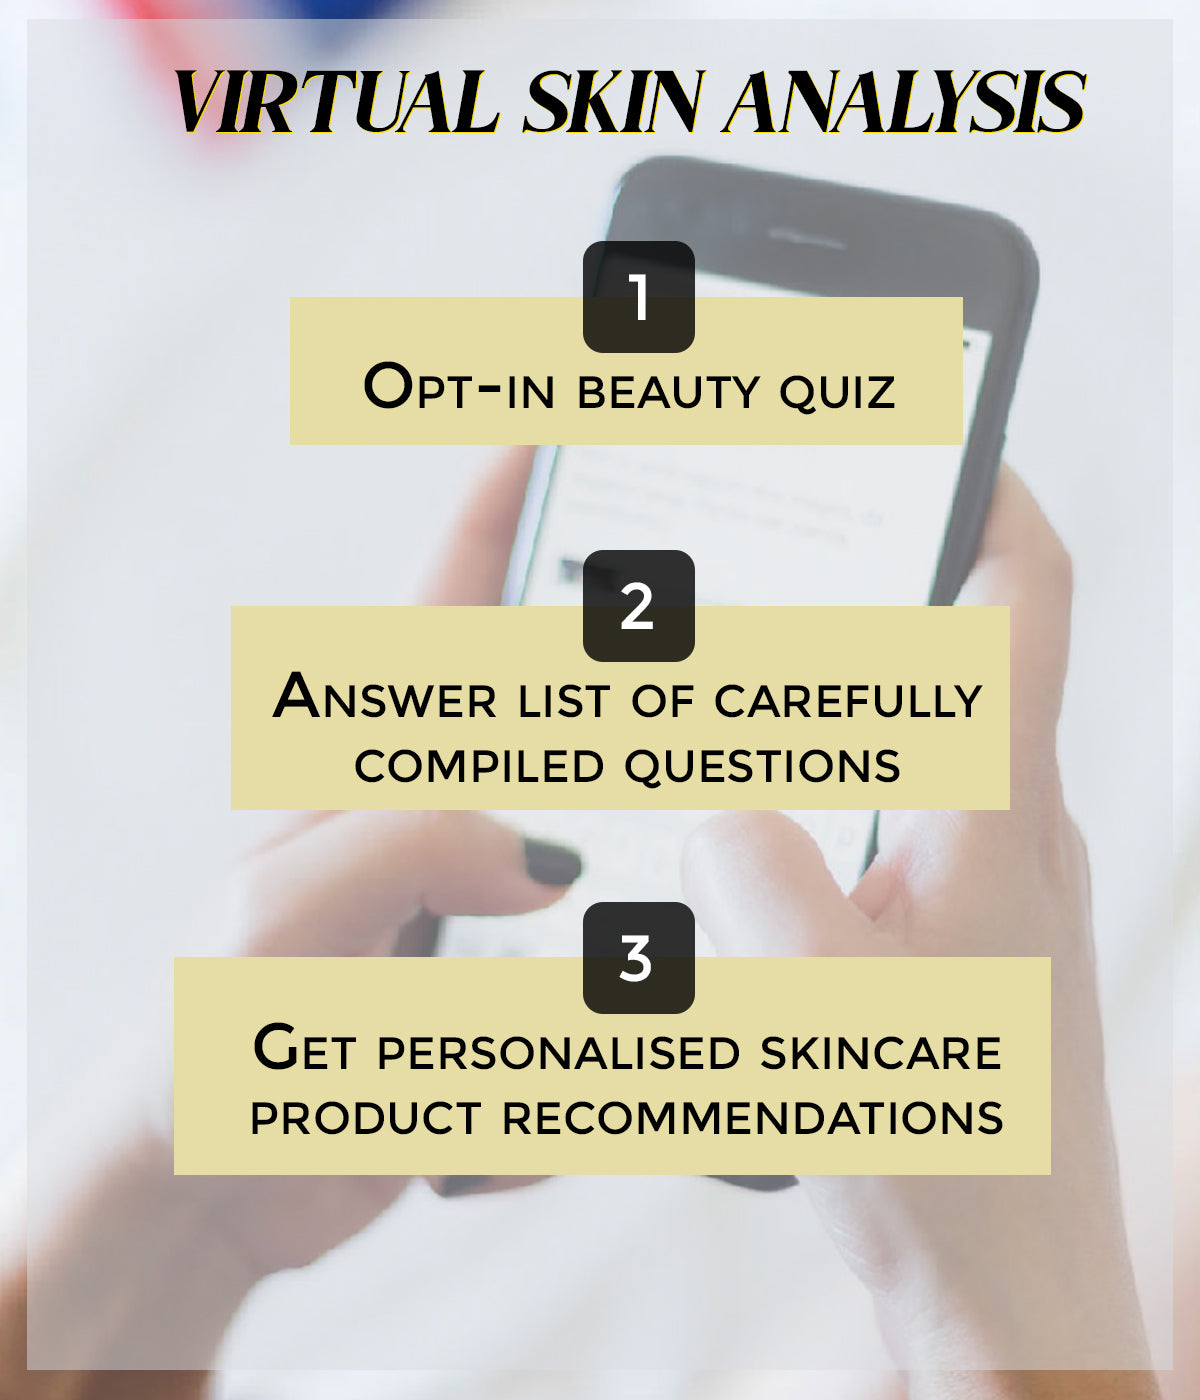 This is an image of the virtual skin analysis on www.sublimelife.com